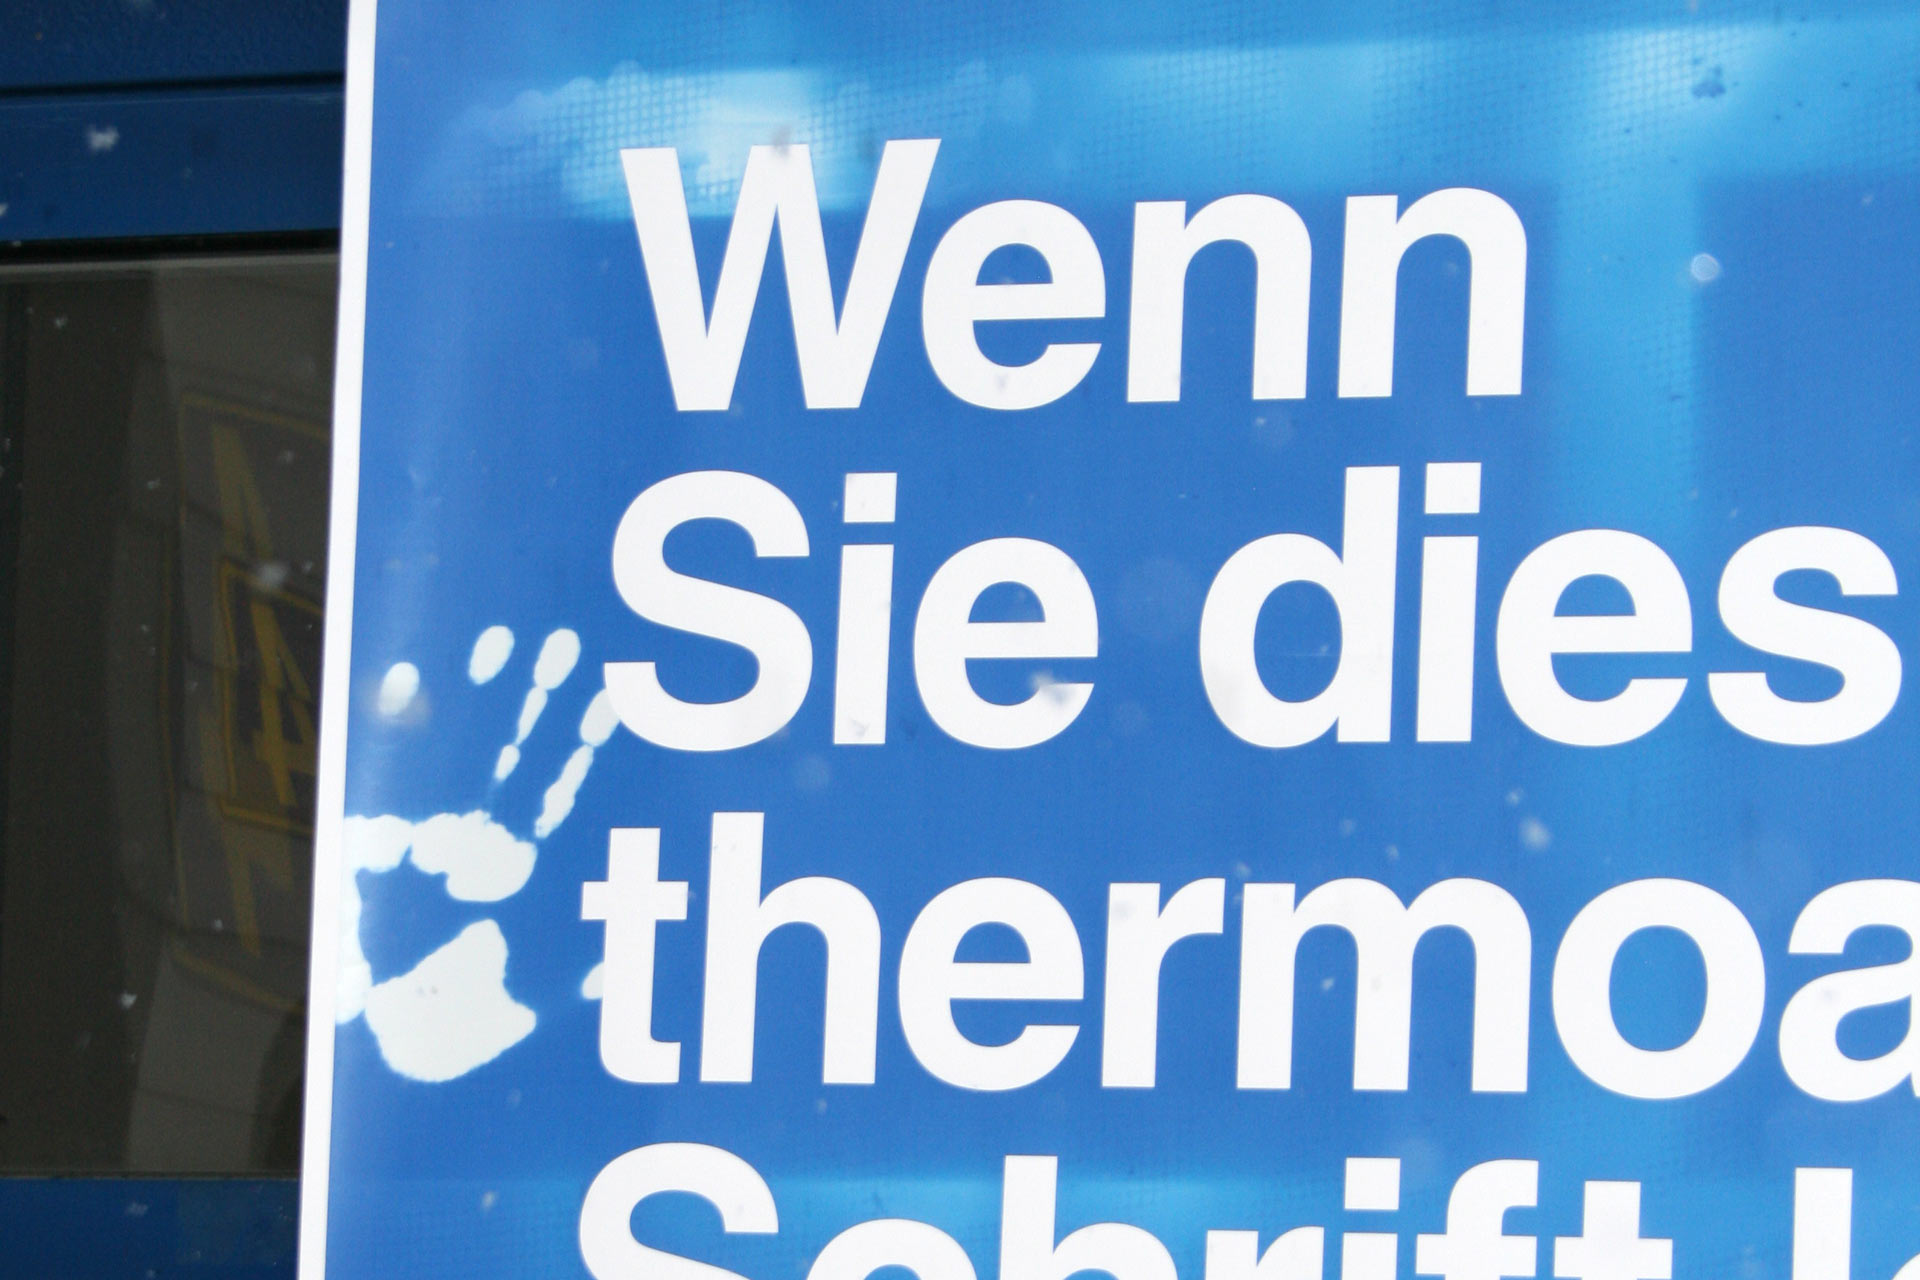 thermoaktive farbe - gruft